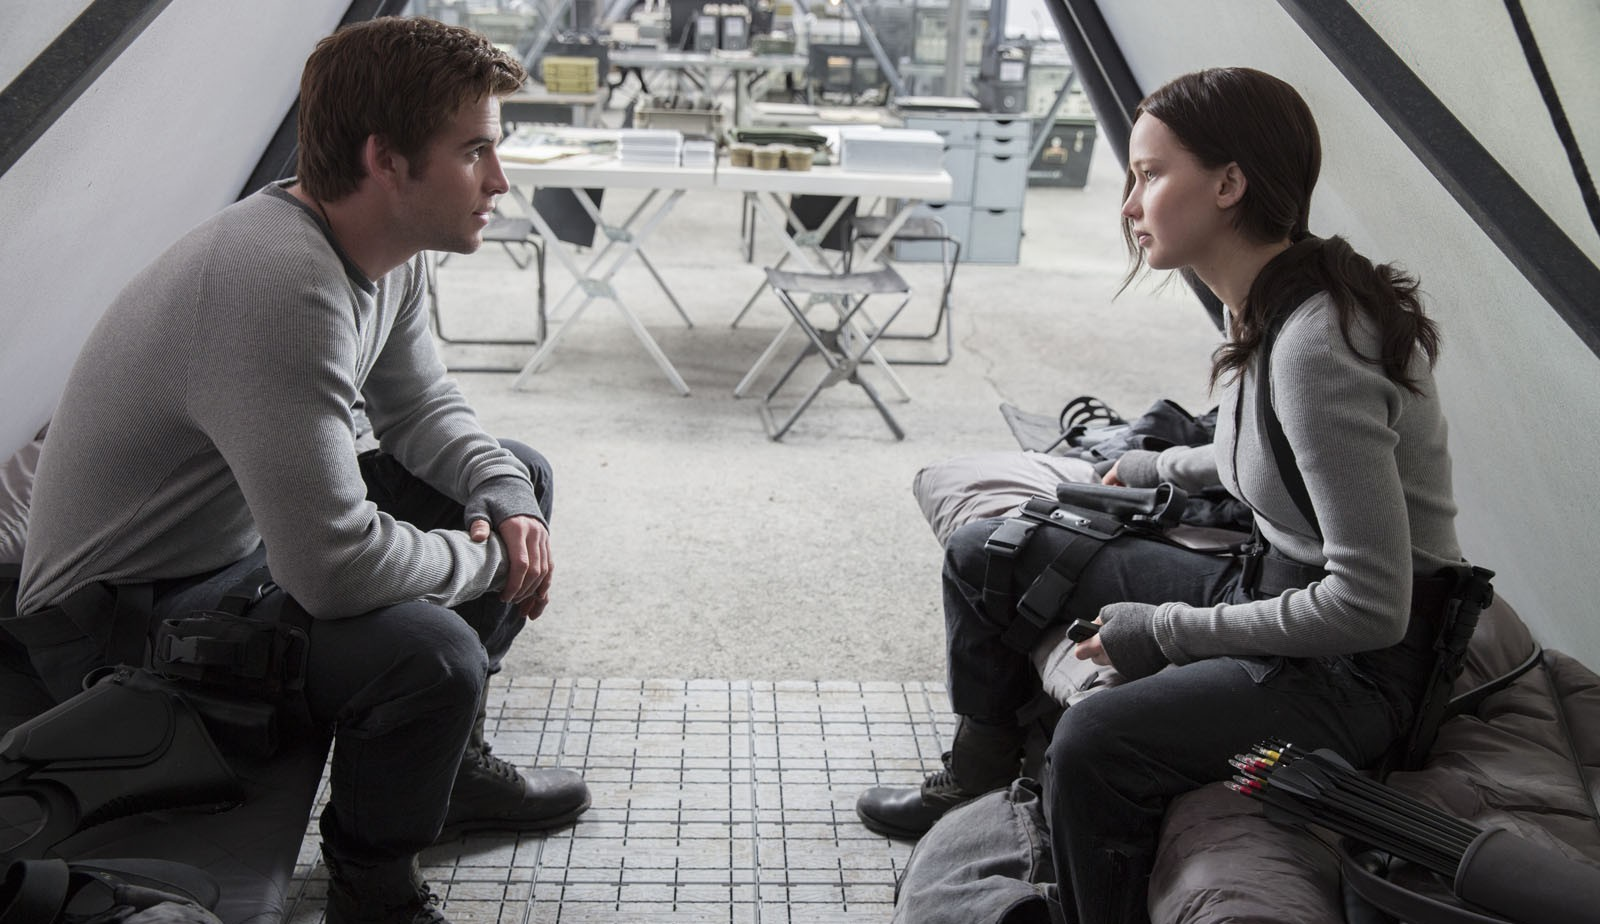 Gale (Hemsworth) and Katniss (Lawrence) plot their next move.